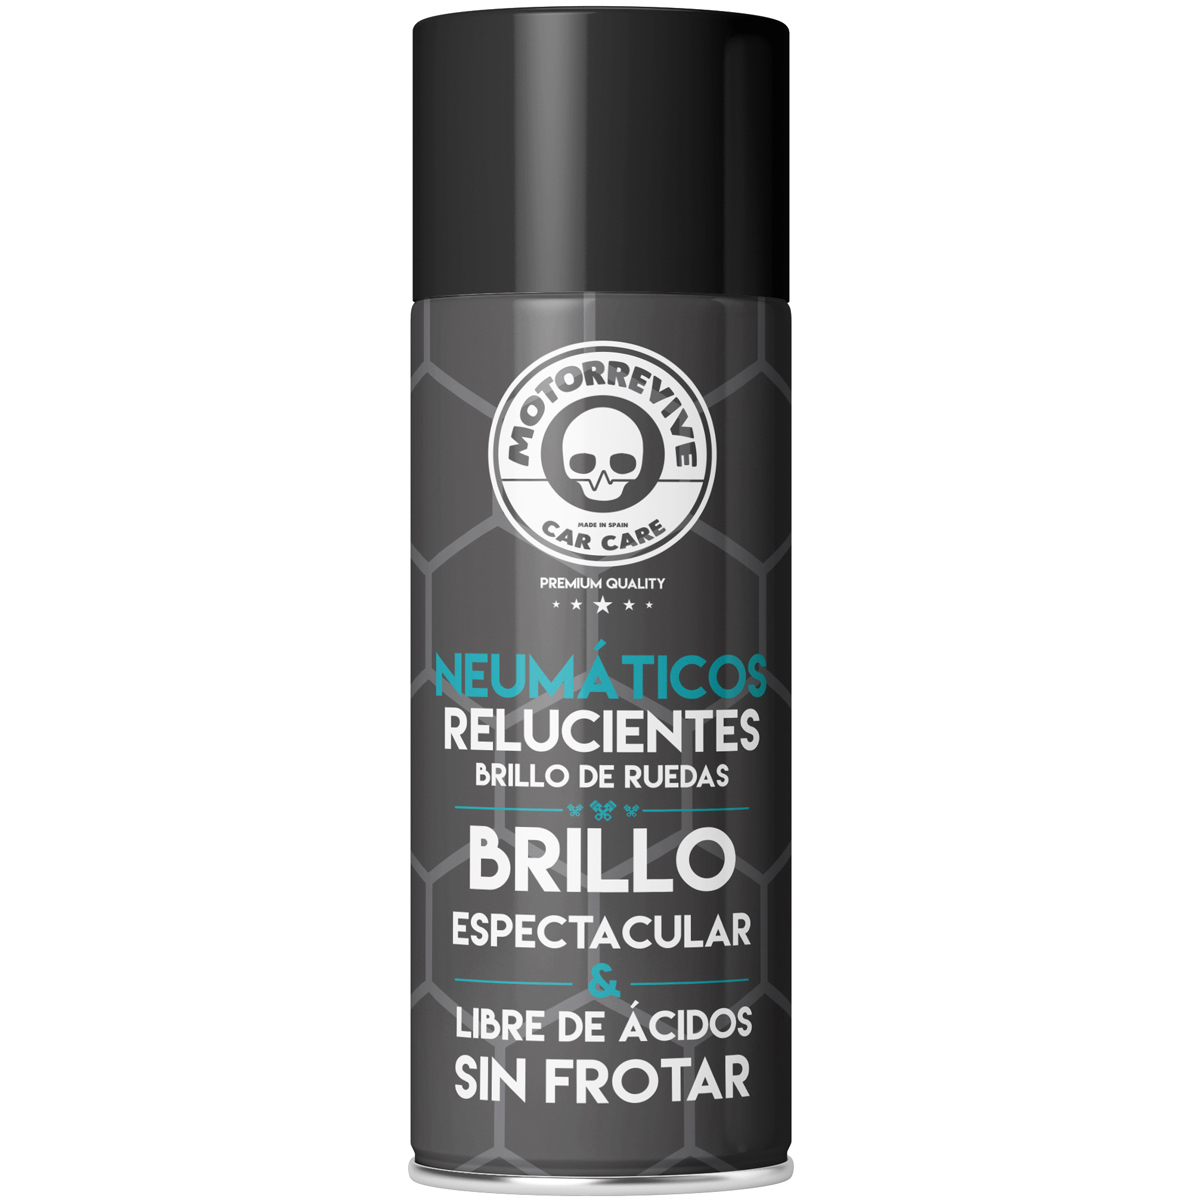 null MOTORREVIVE Neumáticos Relucientes